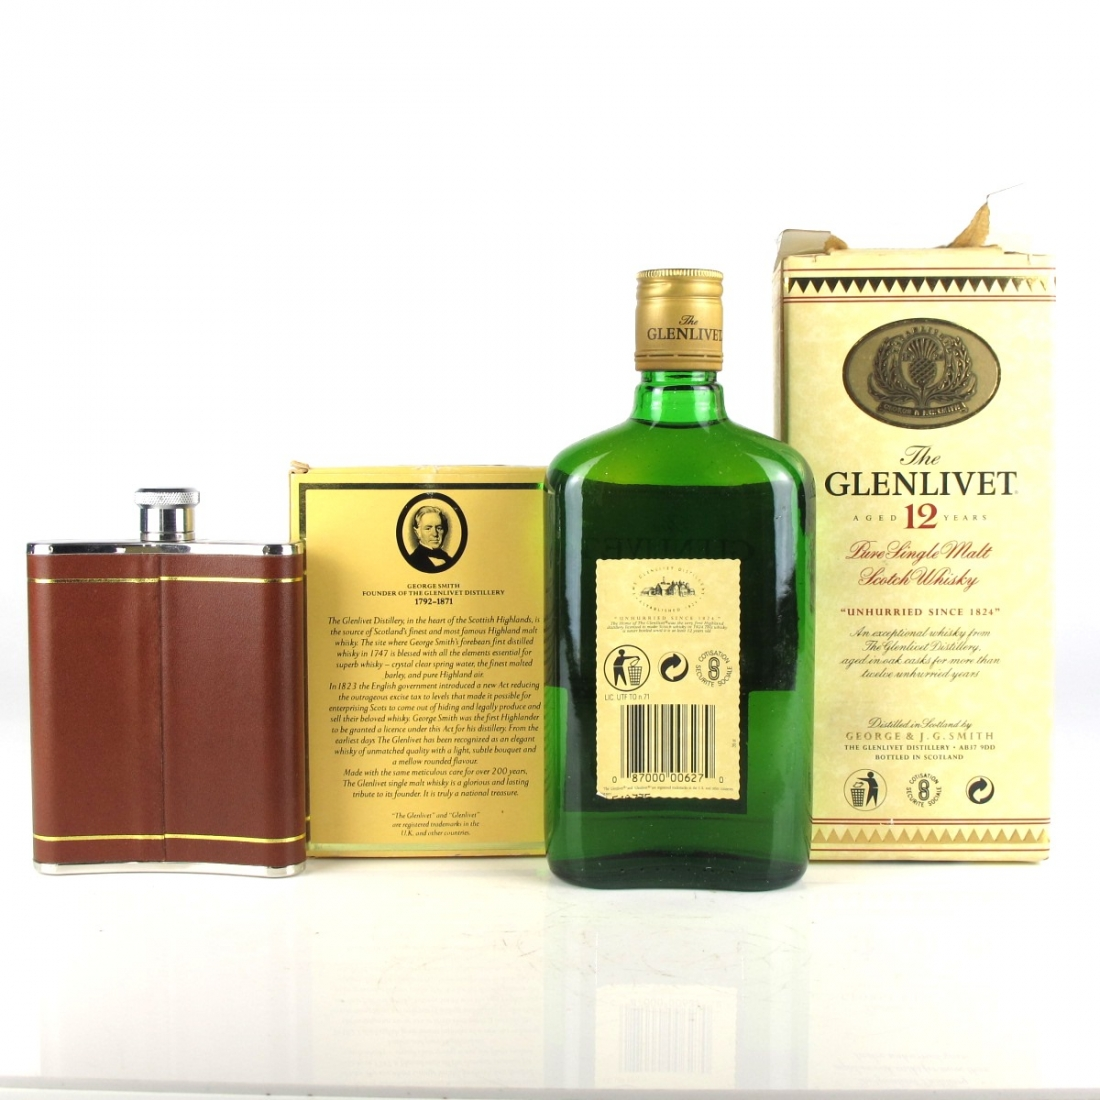 Glenlivet 12 Year Old 35cl and Matching Hip Flask Circa 1990s